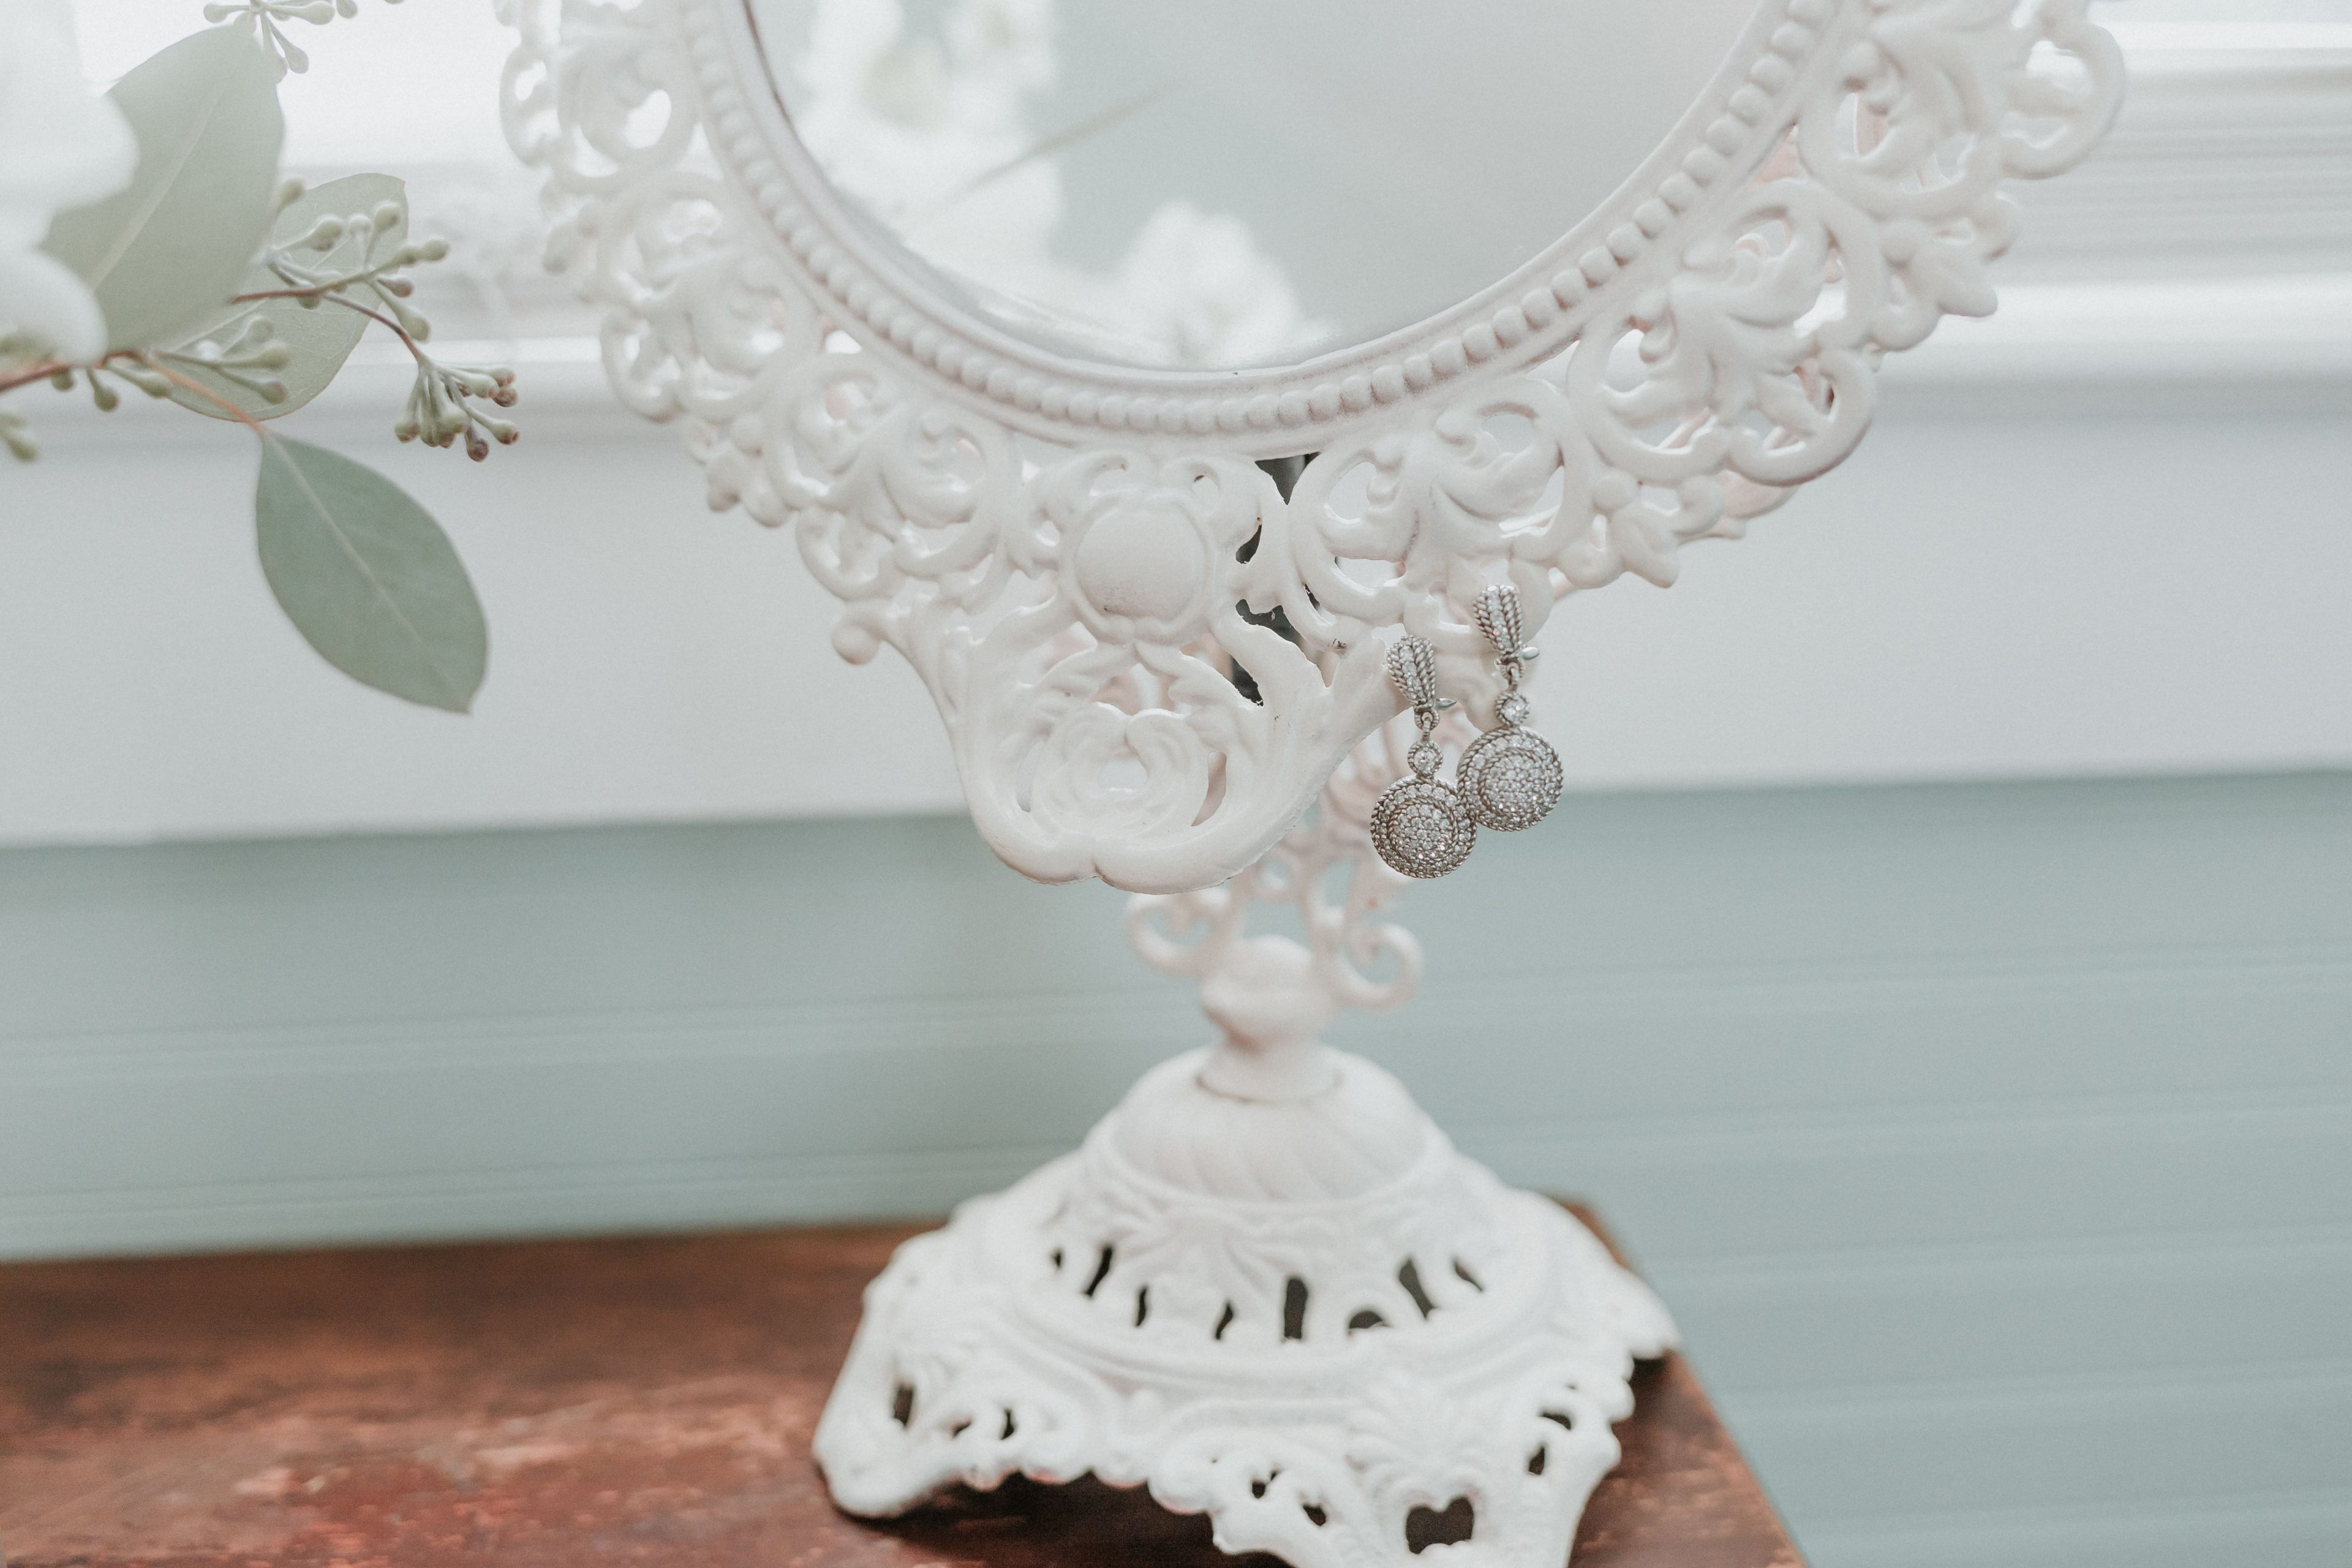 Detail shot of stunning bridal earrings captured by Shutter Owl Photography for a wedding at The Ivy Place